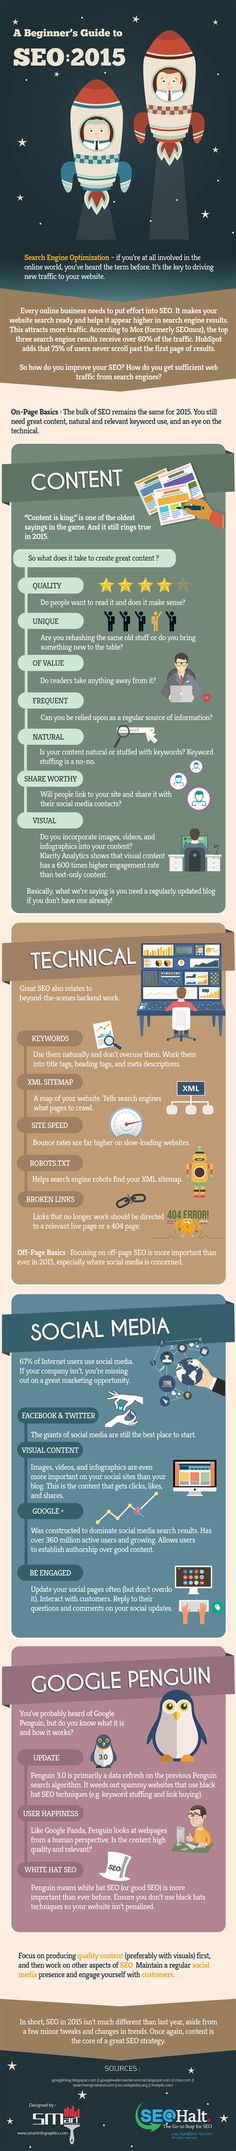 Want Your Site on Page One of Google Here's How to do SEO in 2015 #Infographic